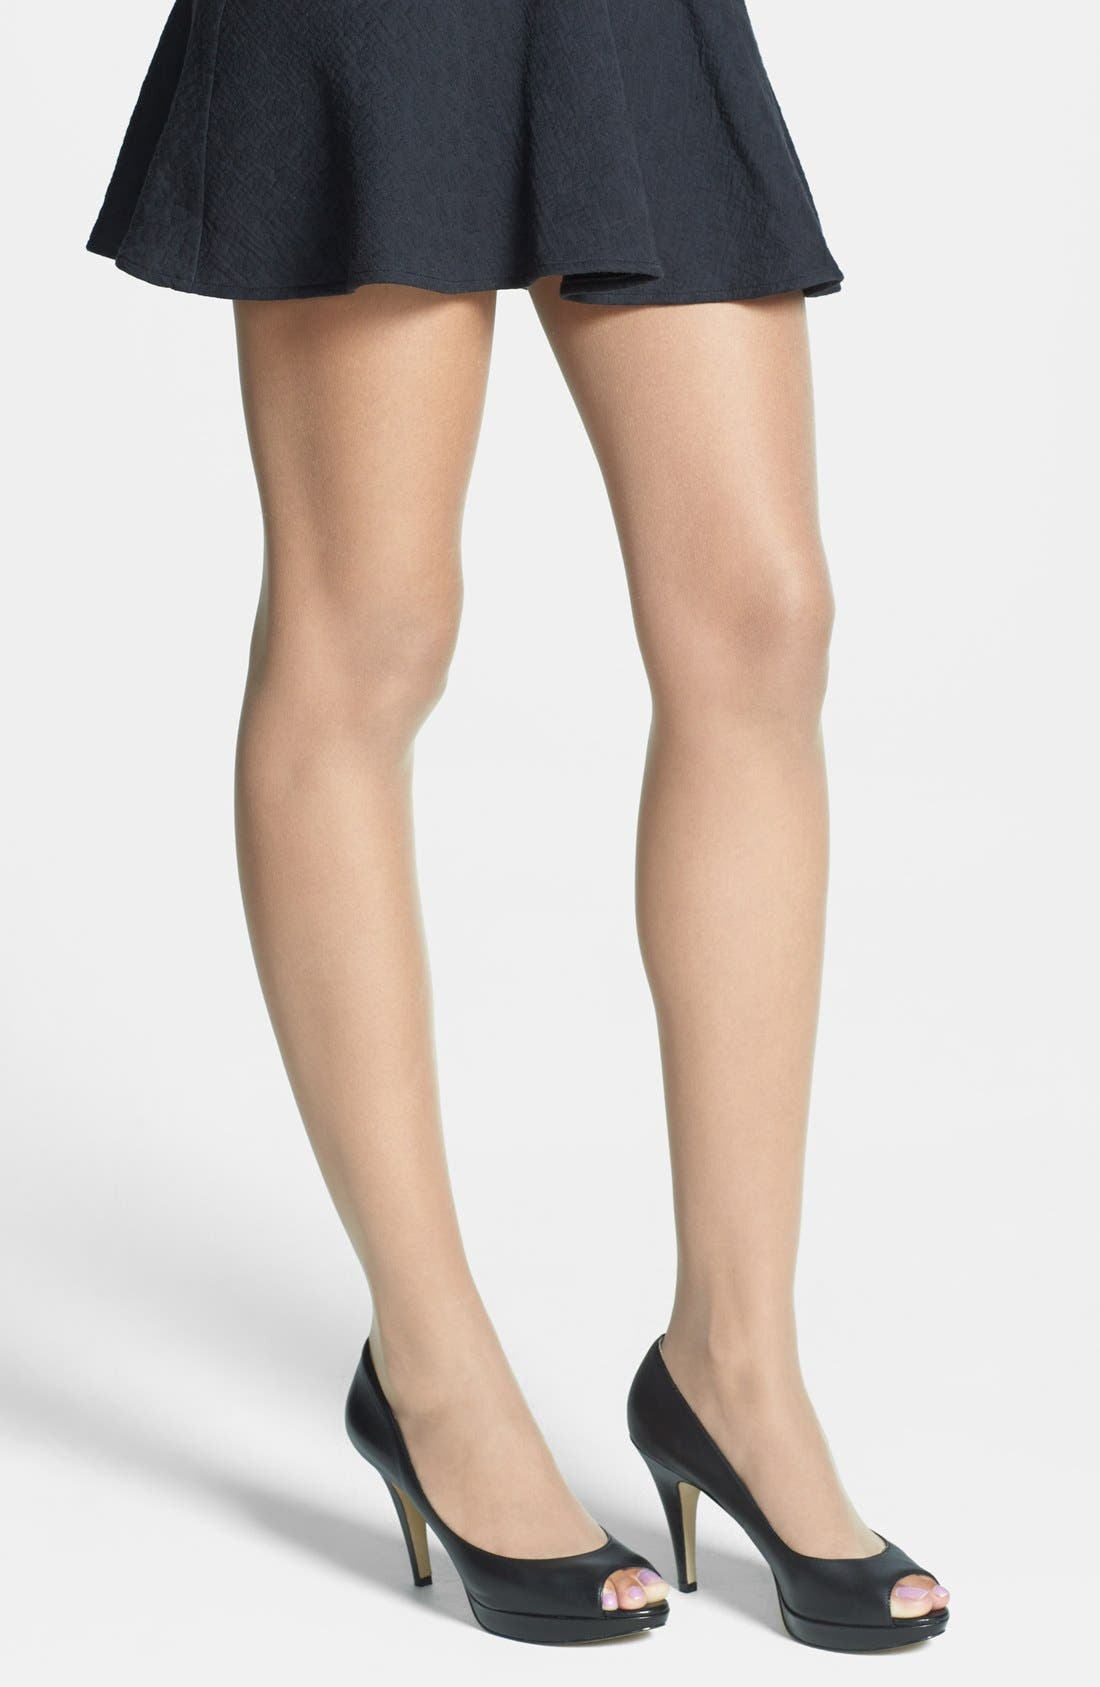 Wolford 'Luxe 9' Toeless Tights